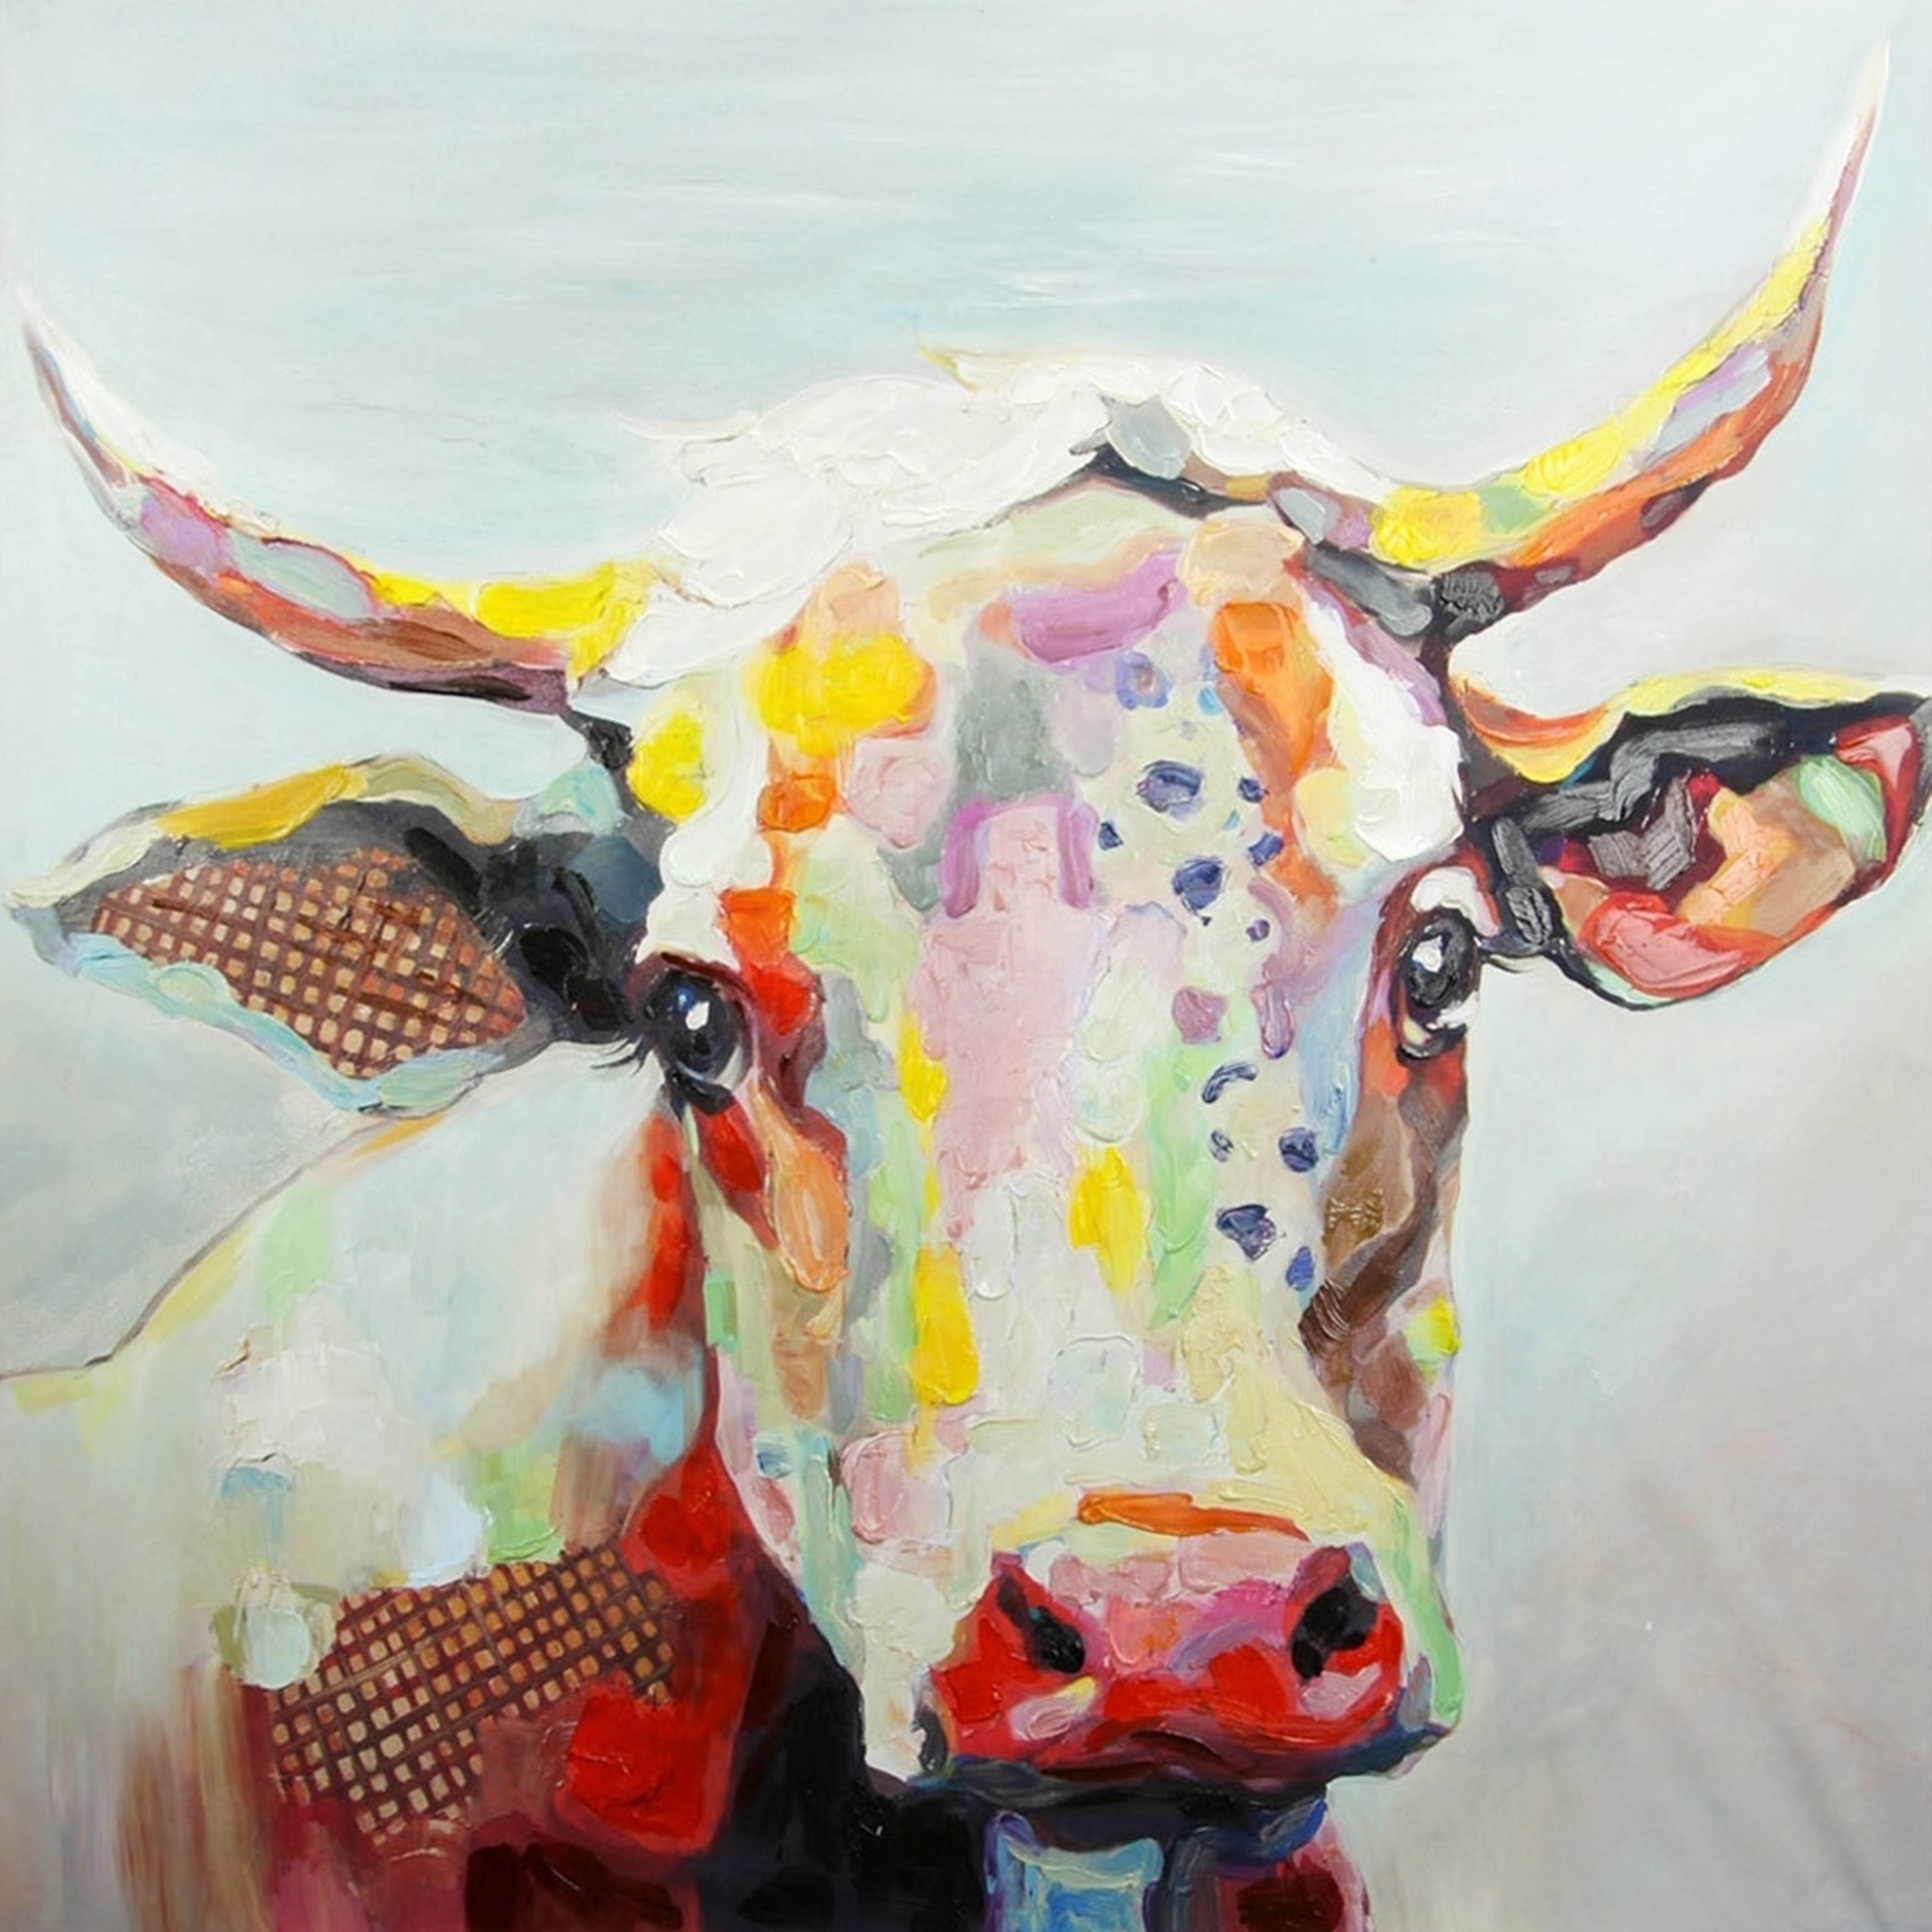 Shop Colorful Cow Printed Canvas Wall Art – Free Shipping Today For Most Recently Released Cow Canvas Wall Art (Gallery 16 of 20)